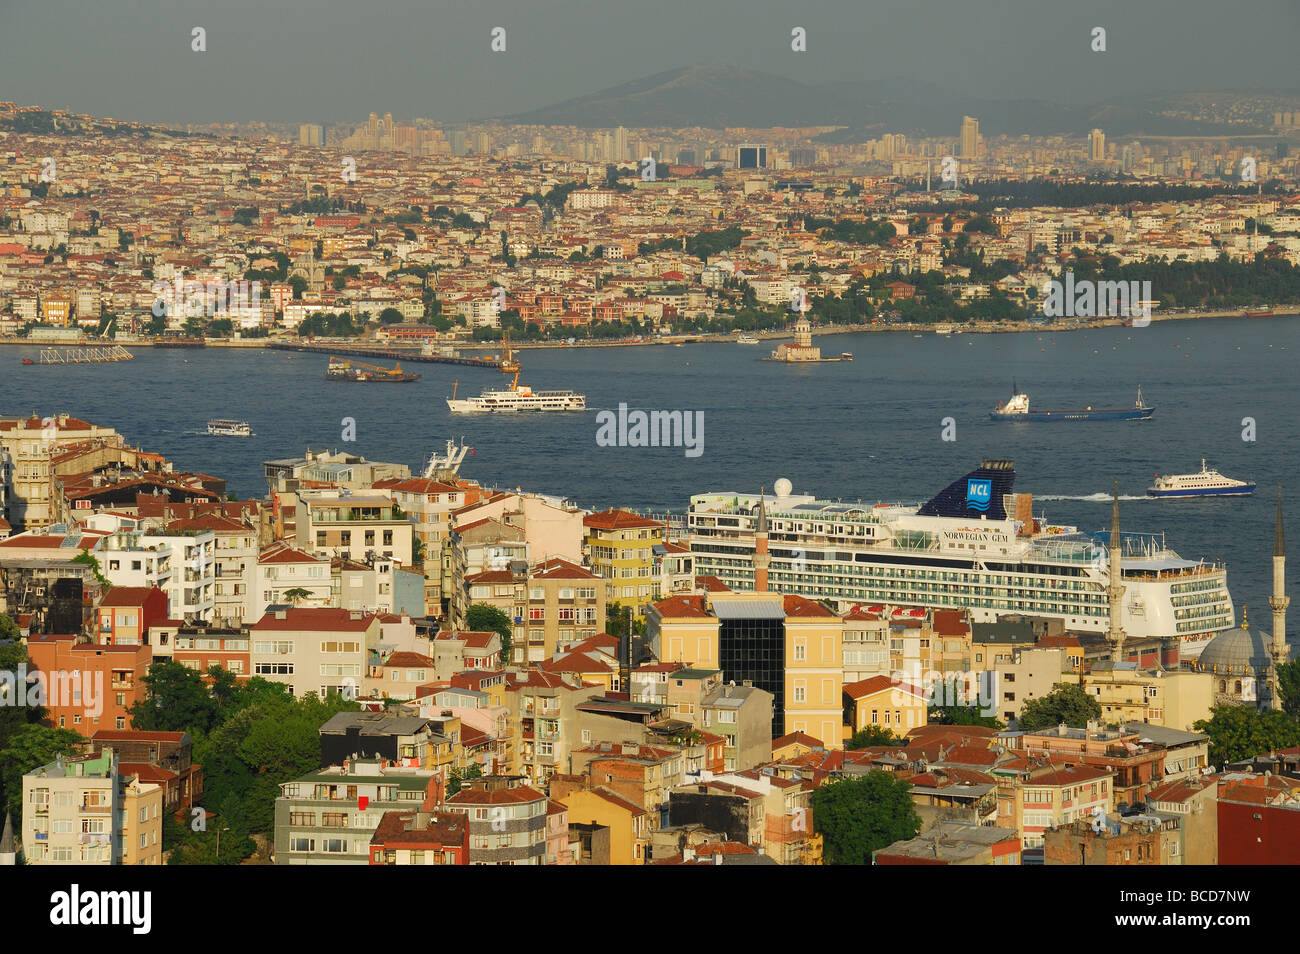 ISTANBUL, TURKEY. A view from Beyoglu over the Bosphorus towards Uskudar on the Asian shore of the city. 2009. - Stock Image